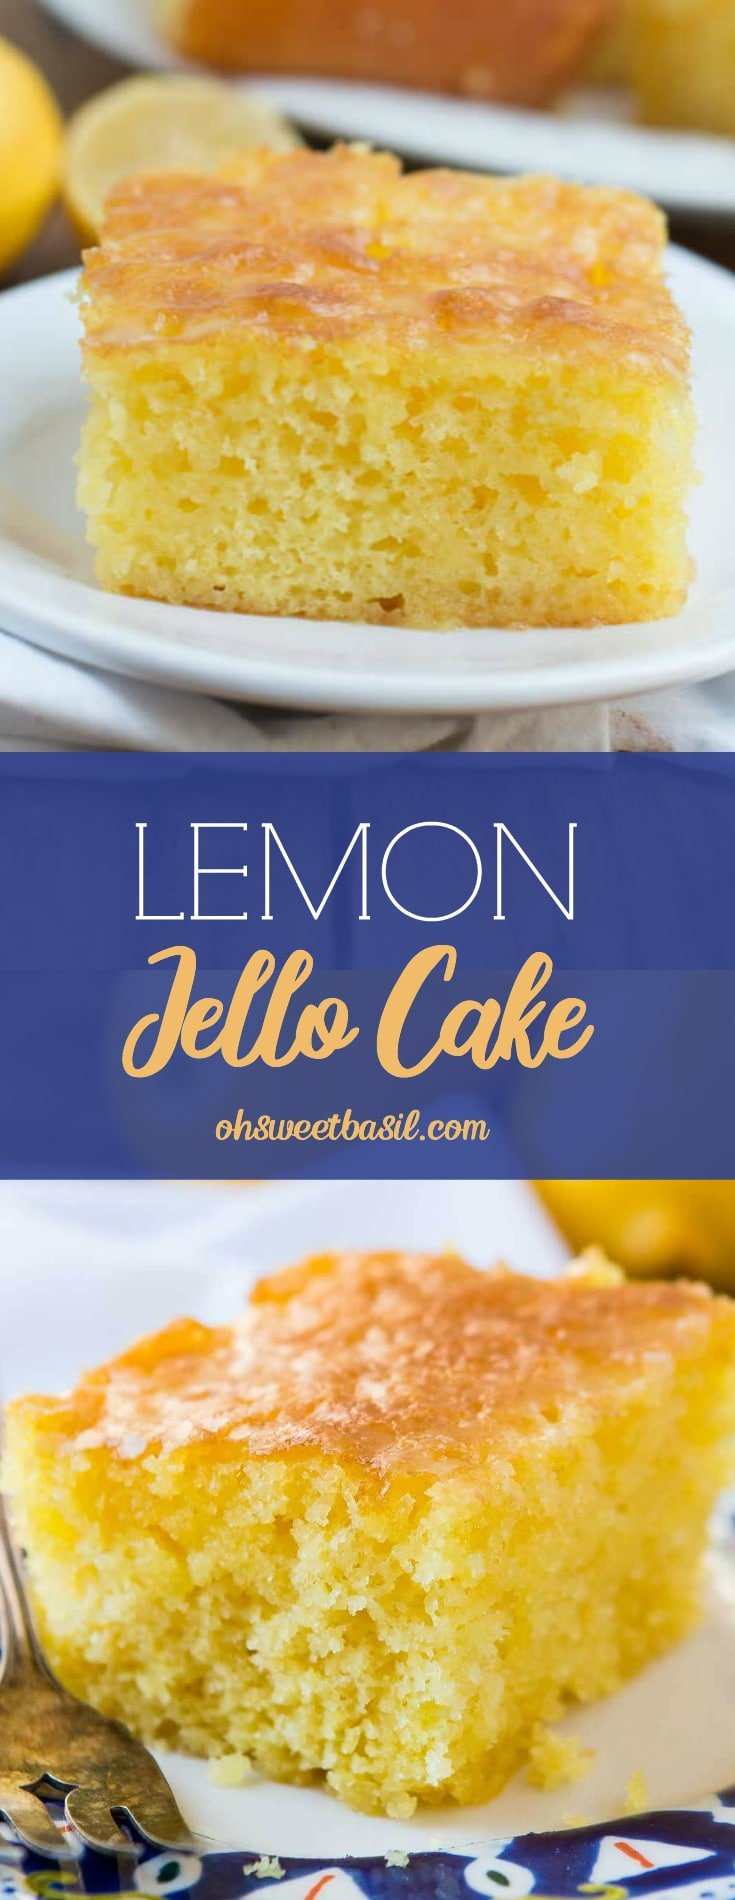 Lemon Jello Cake on a white plate on top of a white napkin on a wooden table.